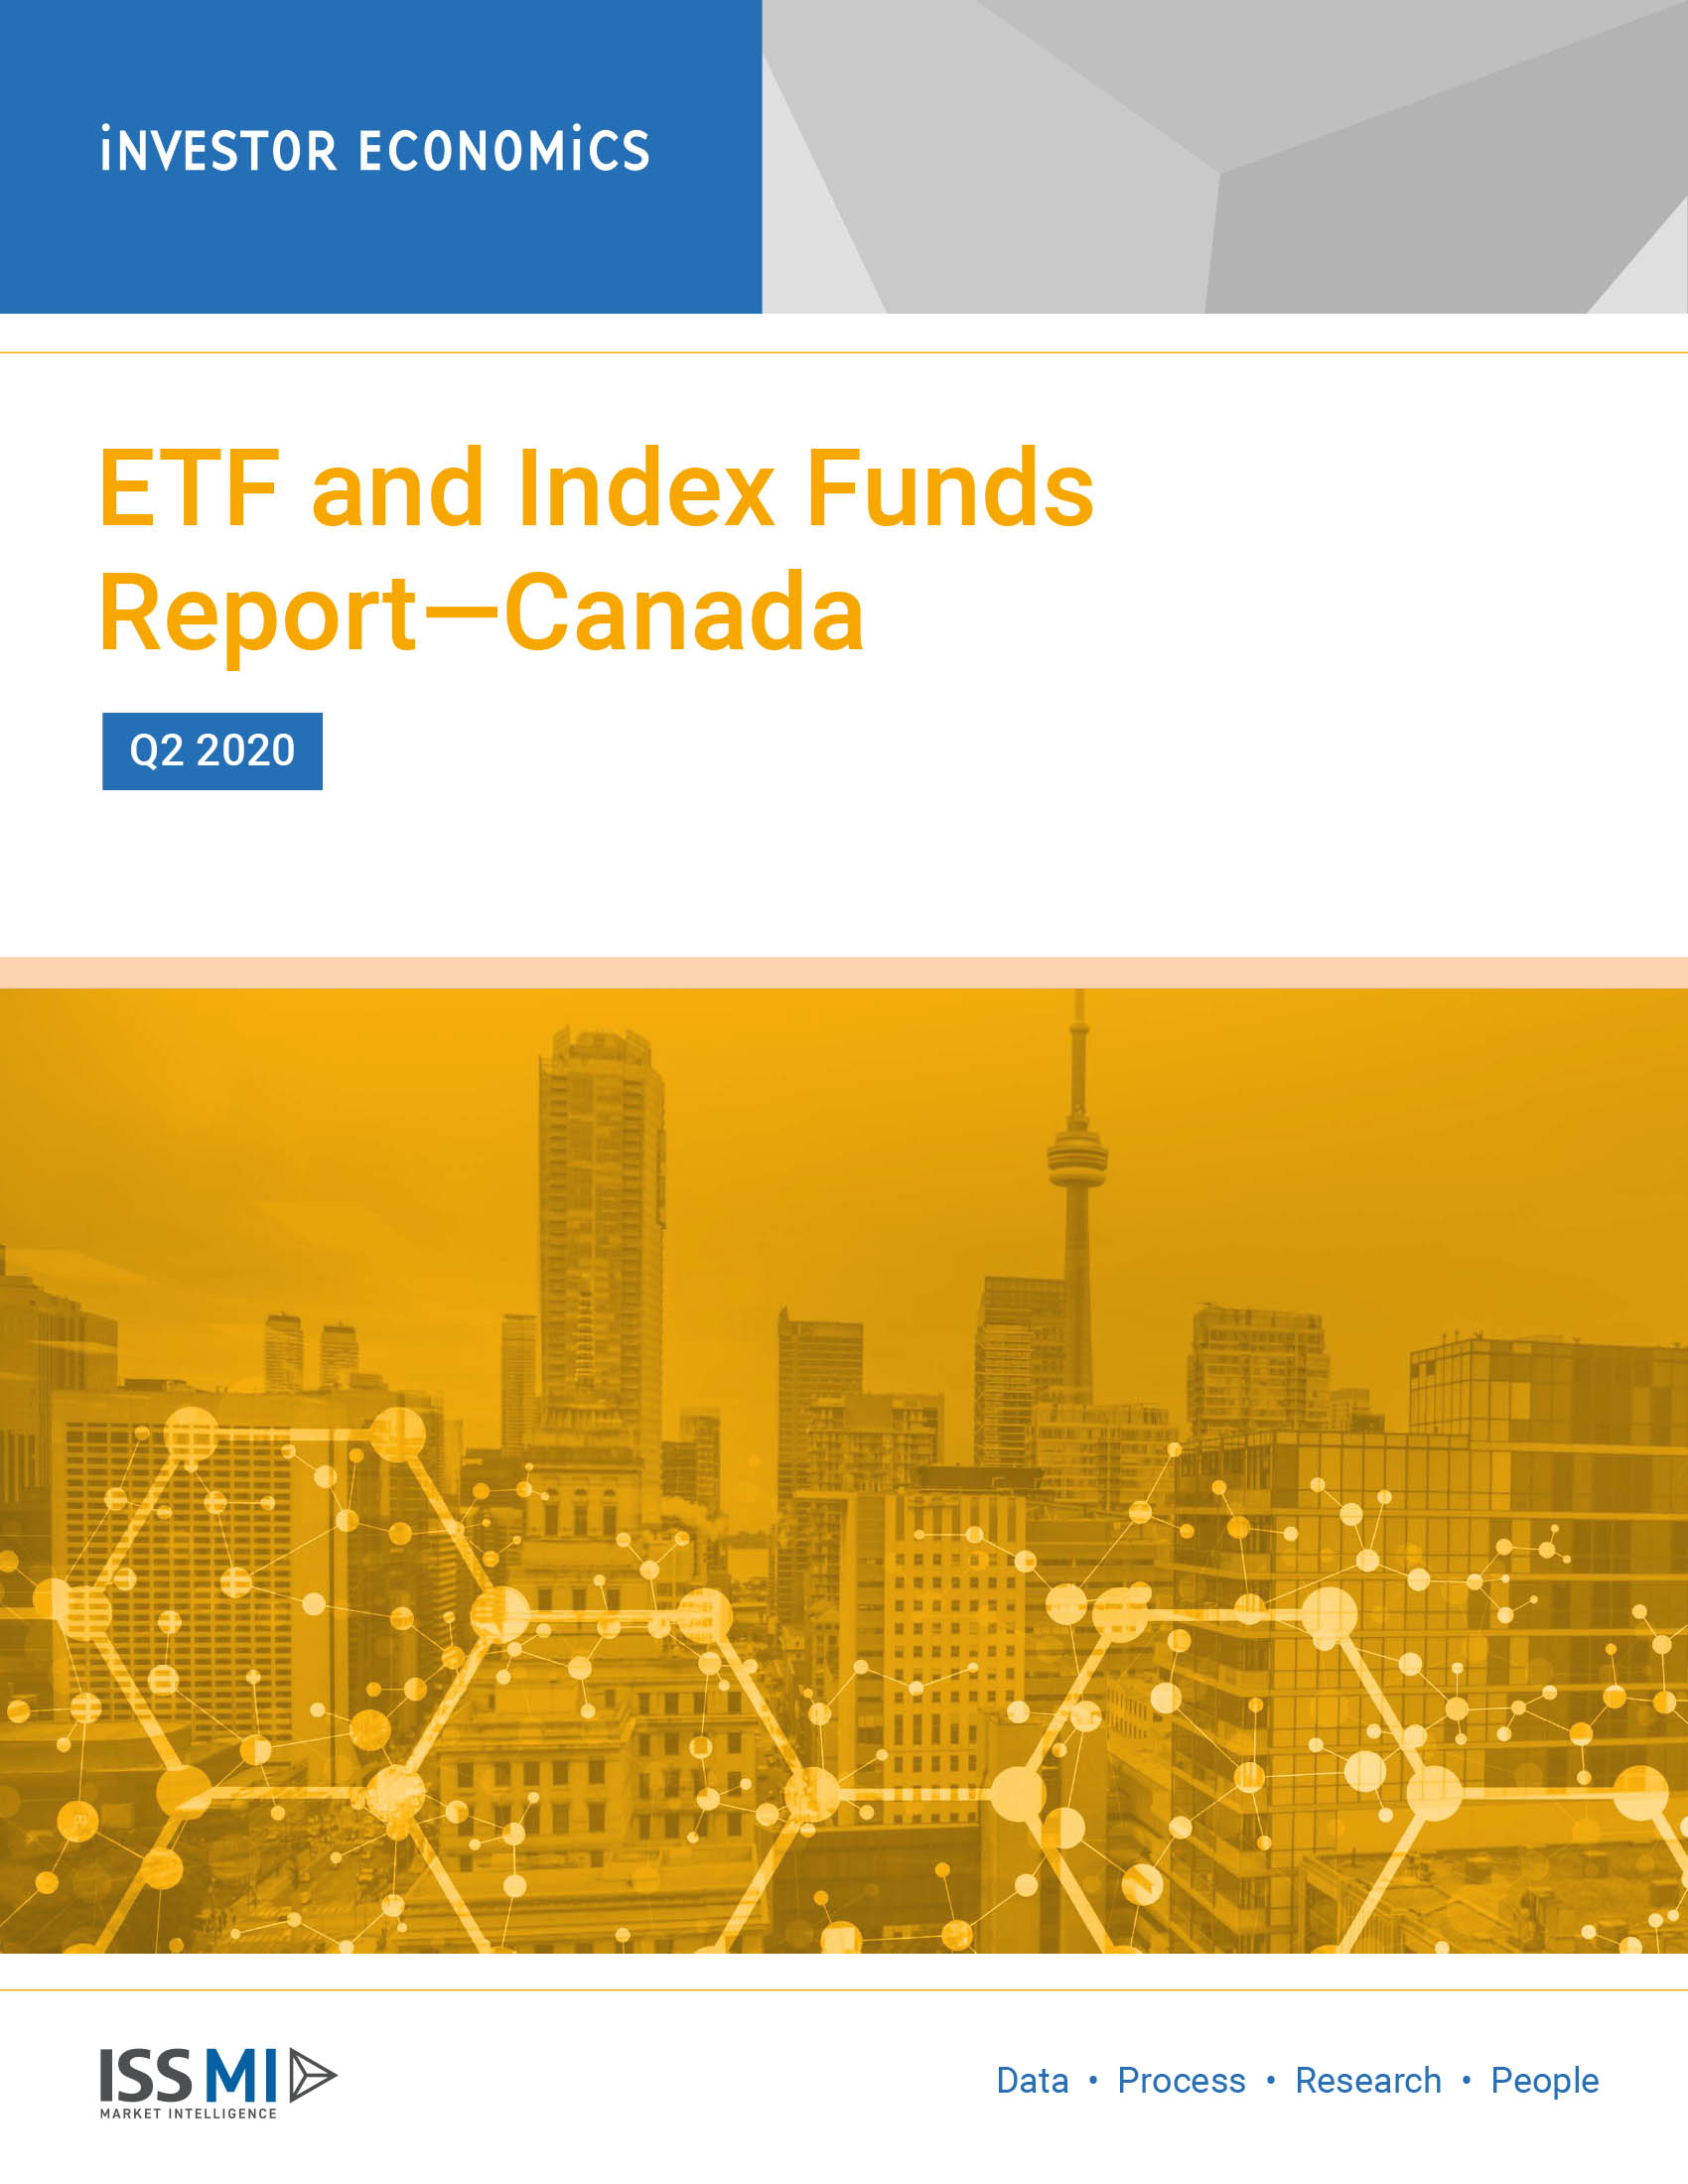 ETF and Index Funds Report